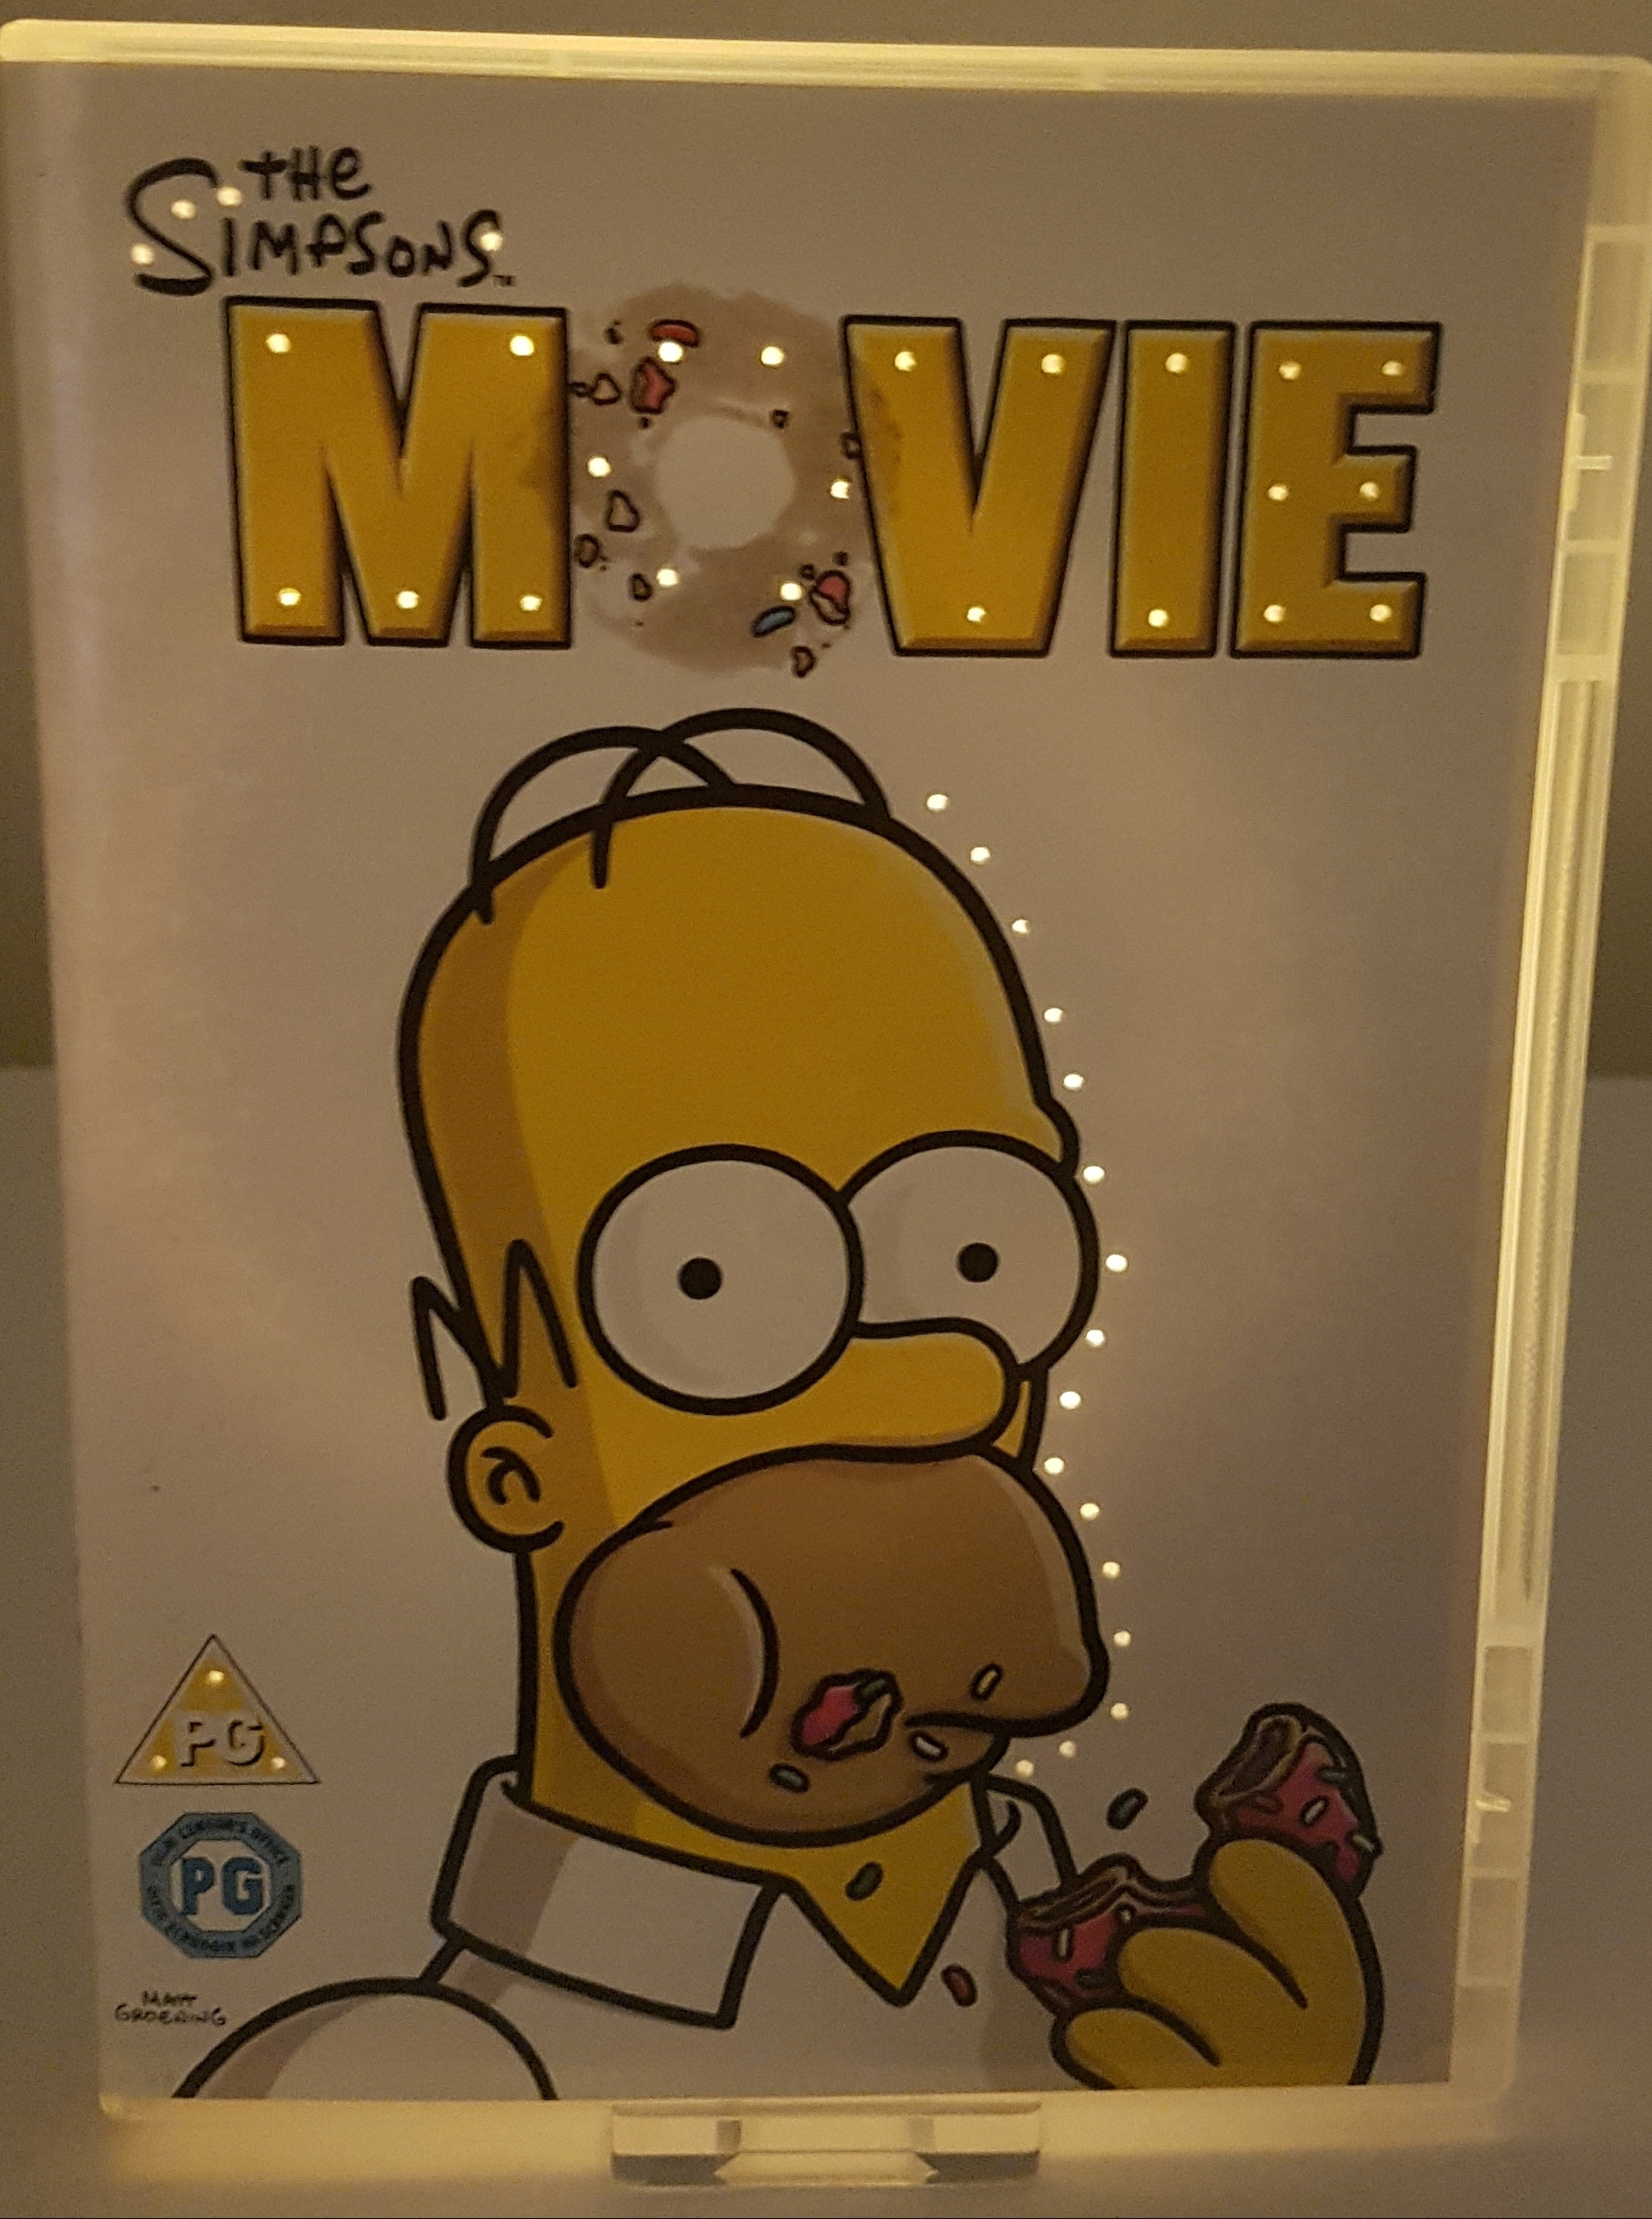 The Simpsons Movie Dvd Neon Nightlight Any Dvd Or Bluray Made To Order Neonglowdvds Online Store Powered By Storenvy